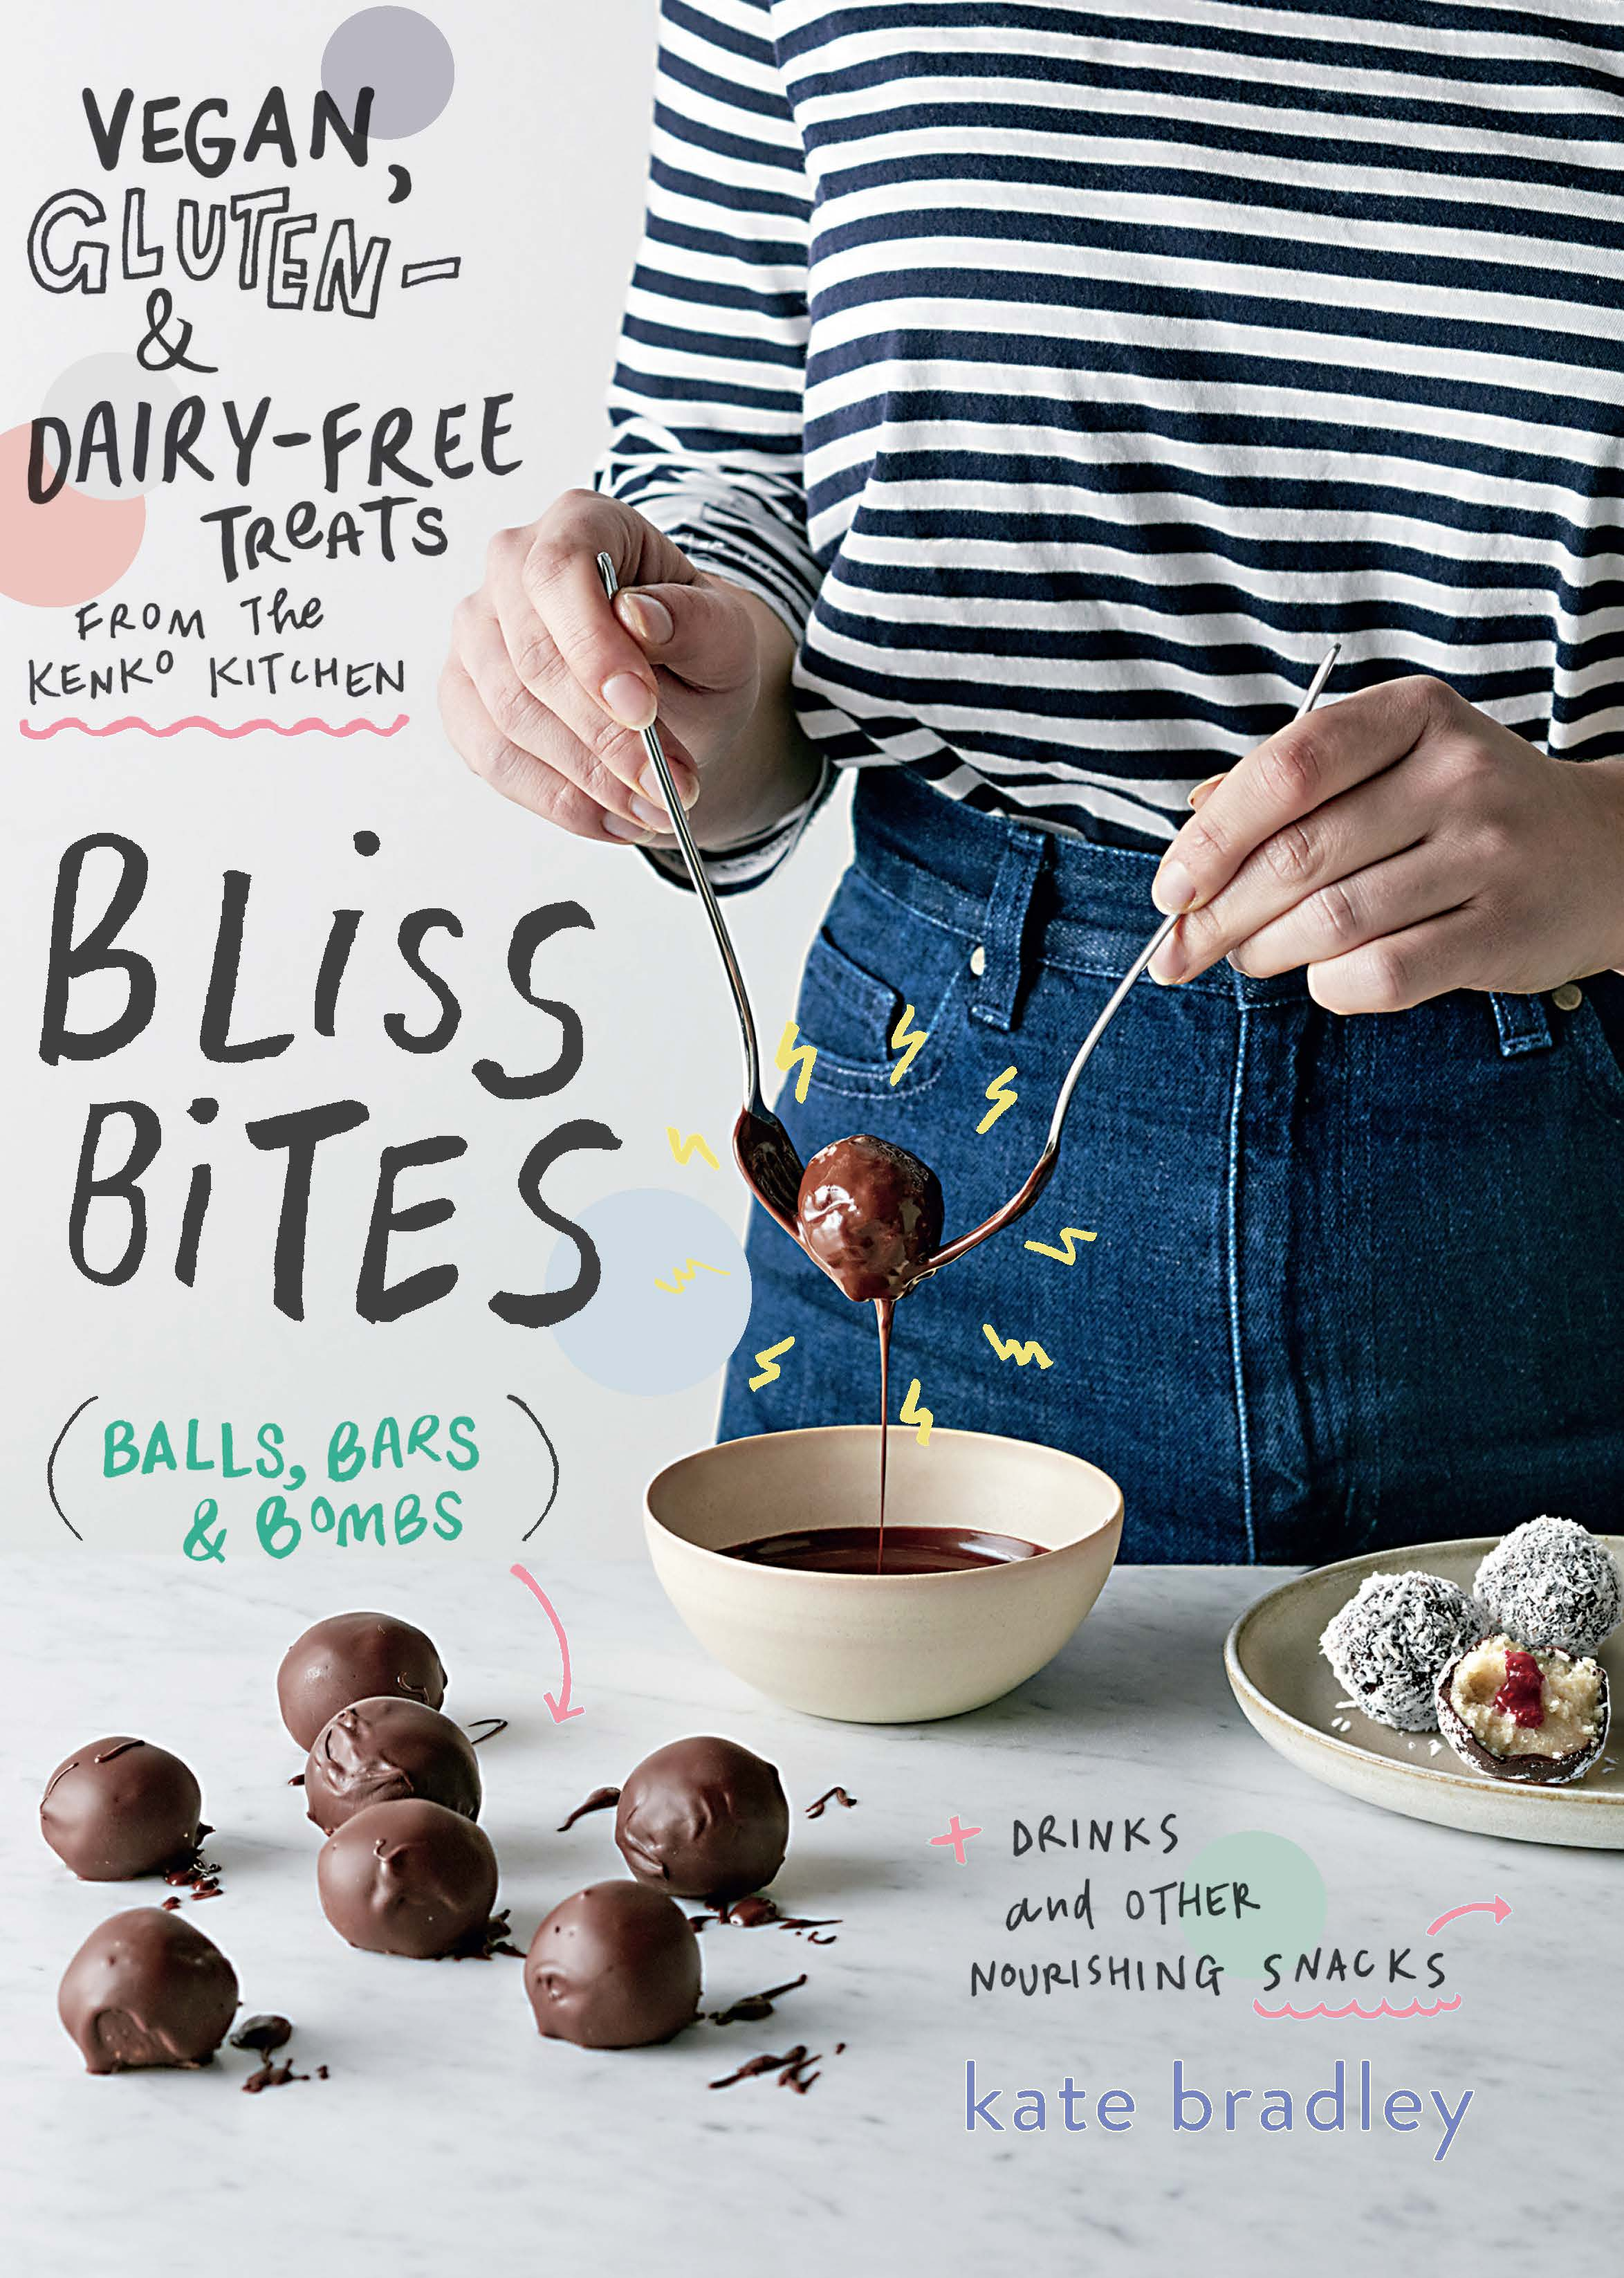 I NEED A COFFEE BLISS BALLS